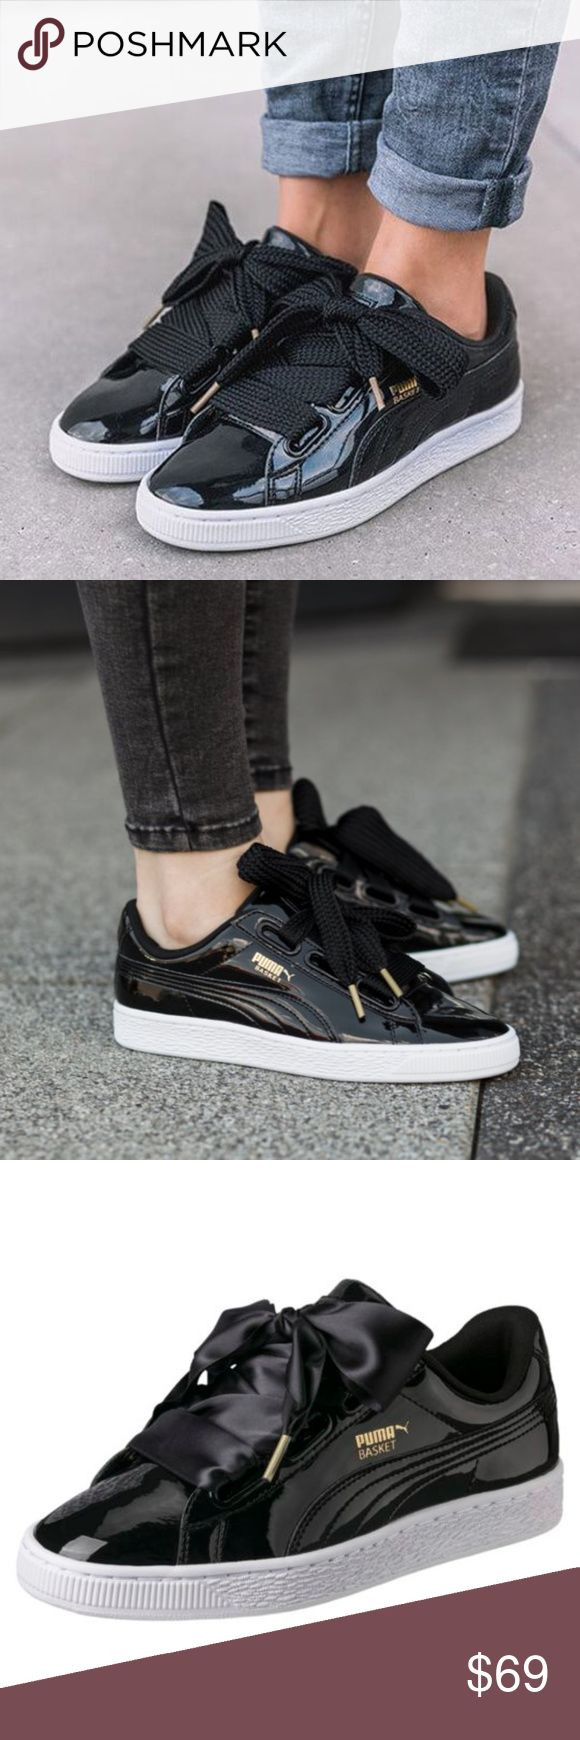 PUMA Lace-Up Sneakers NIB! In Black This PUMA Basket is returning from the 1971 archive with woven bow lacing that will make any girl's heart throb.   *Oversized lace-up fastening  *Branded tongue and cuff  *Padded for comfort  *Gold-tone logo detail  *Chunky sole  *Moulded tread   ❌NO TRADES I❤️Bundles ❤️REASONABLE OFFERS ONLY PLEASE❤️ Puma Shoes Sneakers